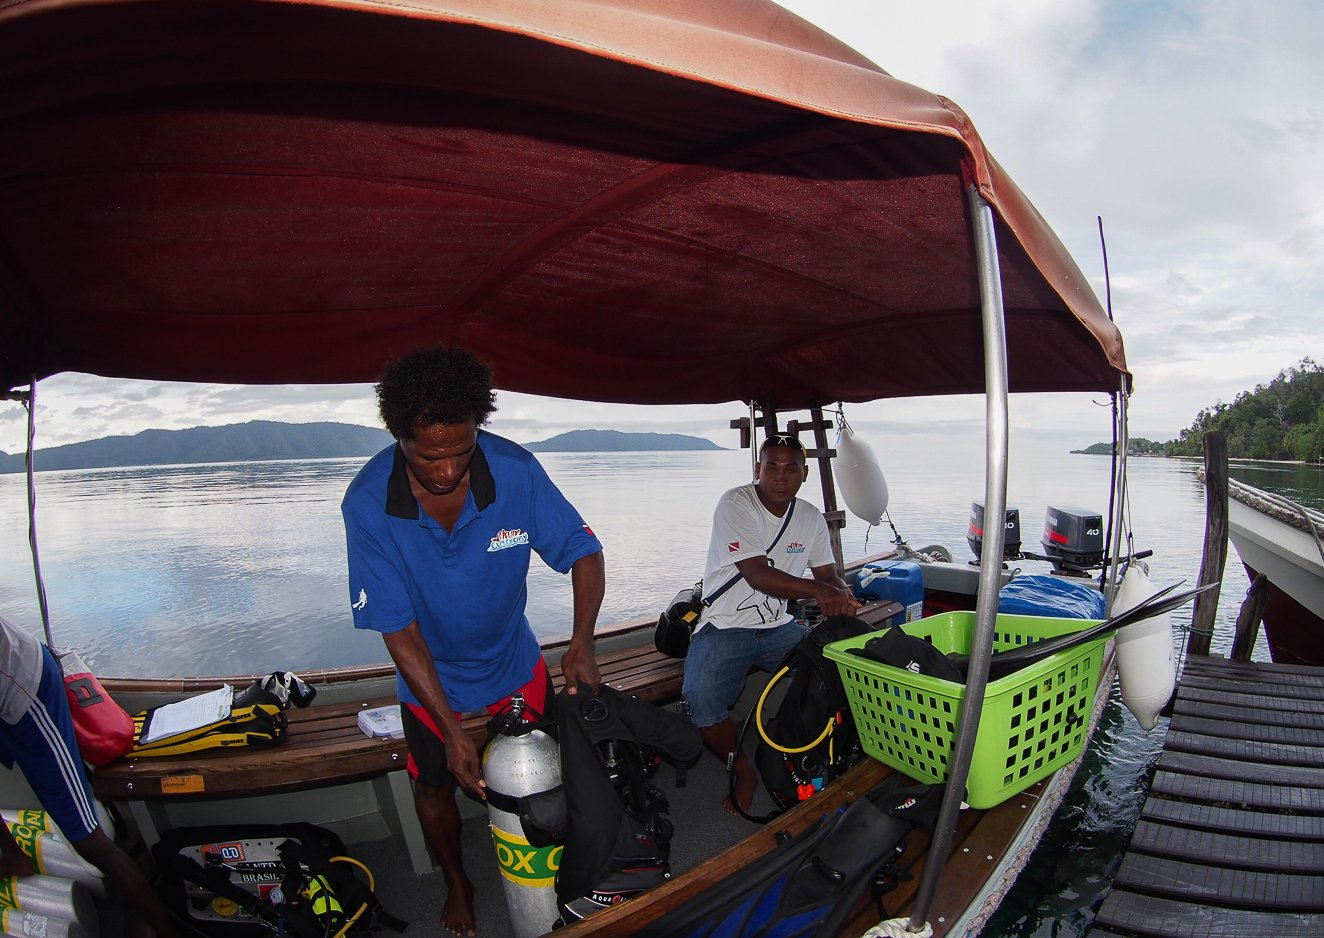 boat crew preparing scuba diving gear inside the boat